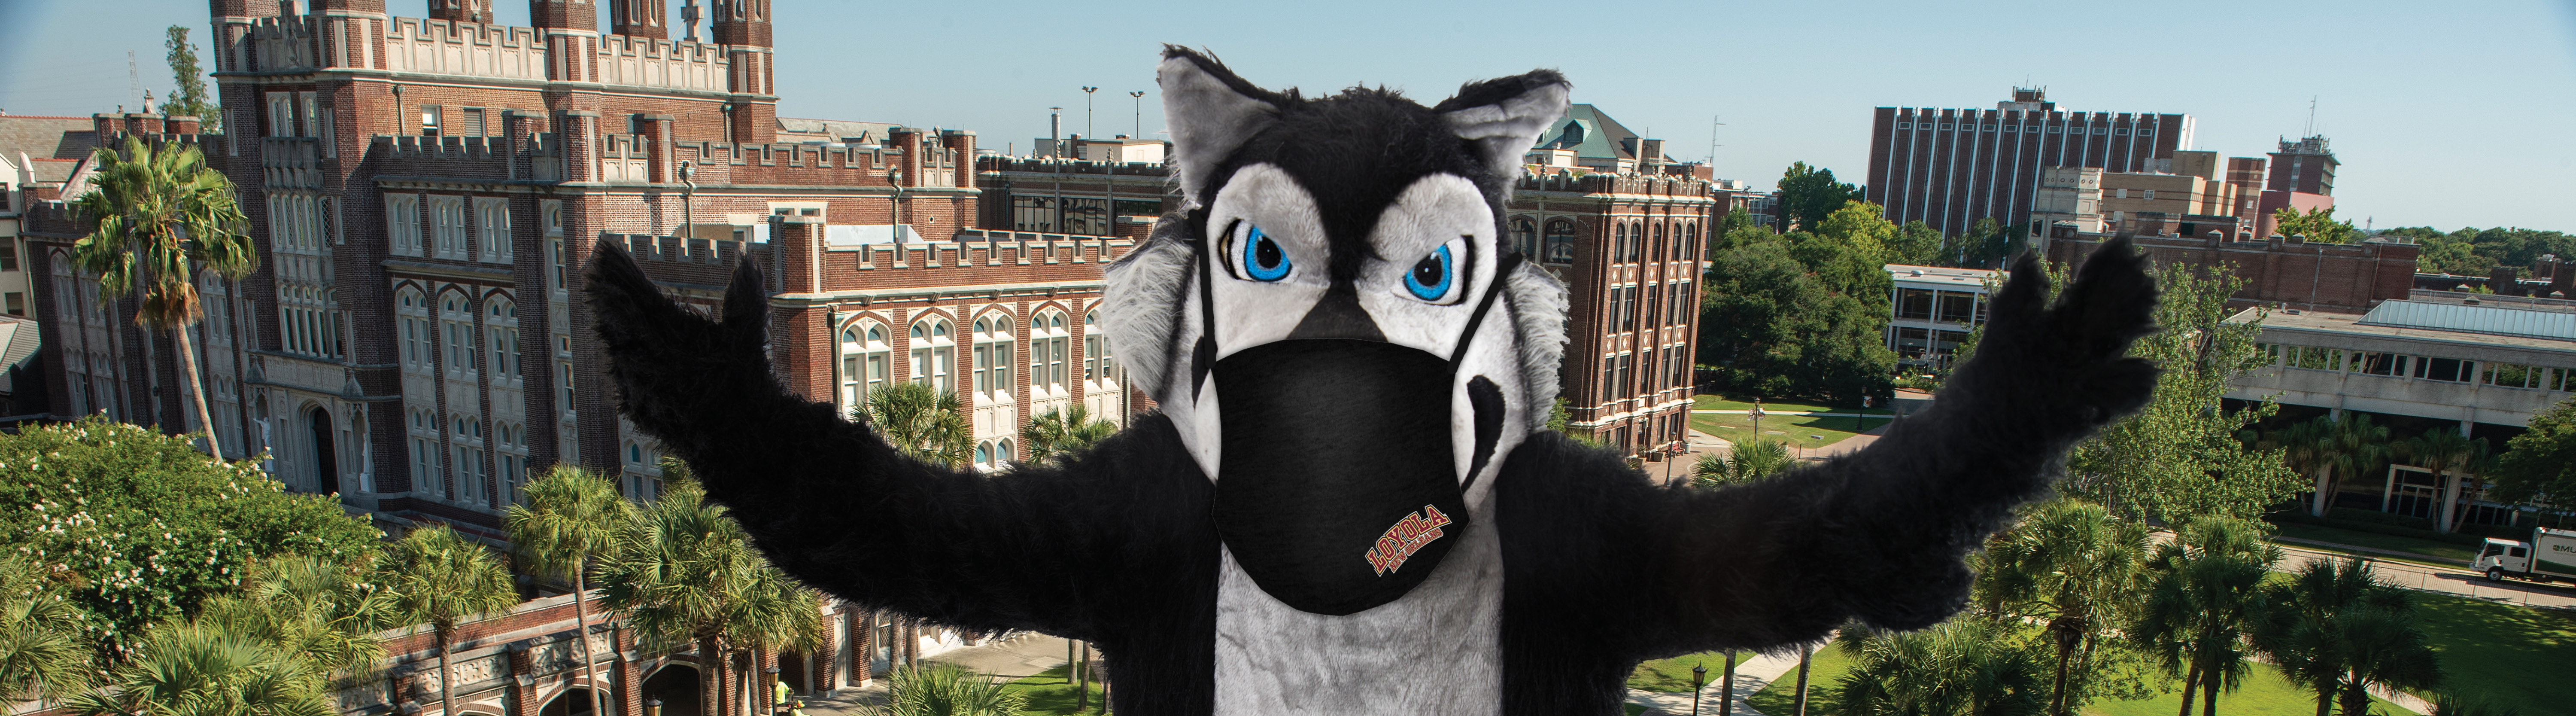 Havoc wearing face mask on campus